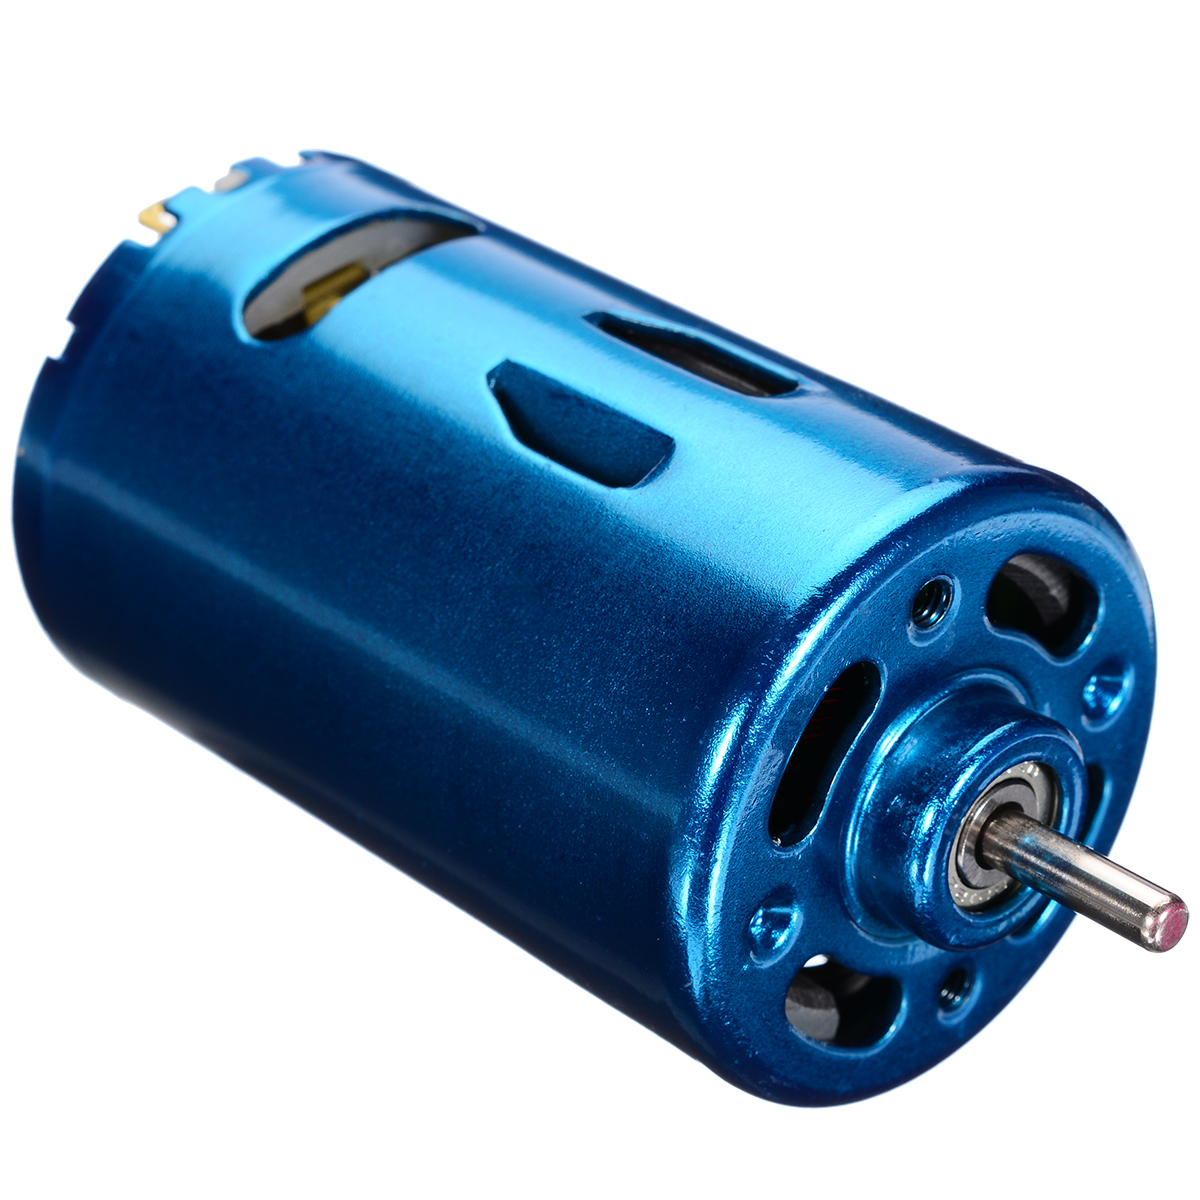 1pc High Speed Large Torque RS-550 Motor DC 7.4-24V 10000/15000/30000RPM RC Car Boat Model